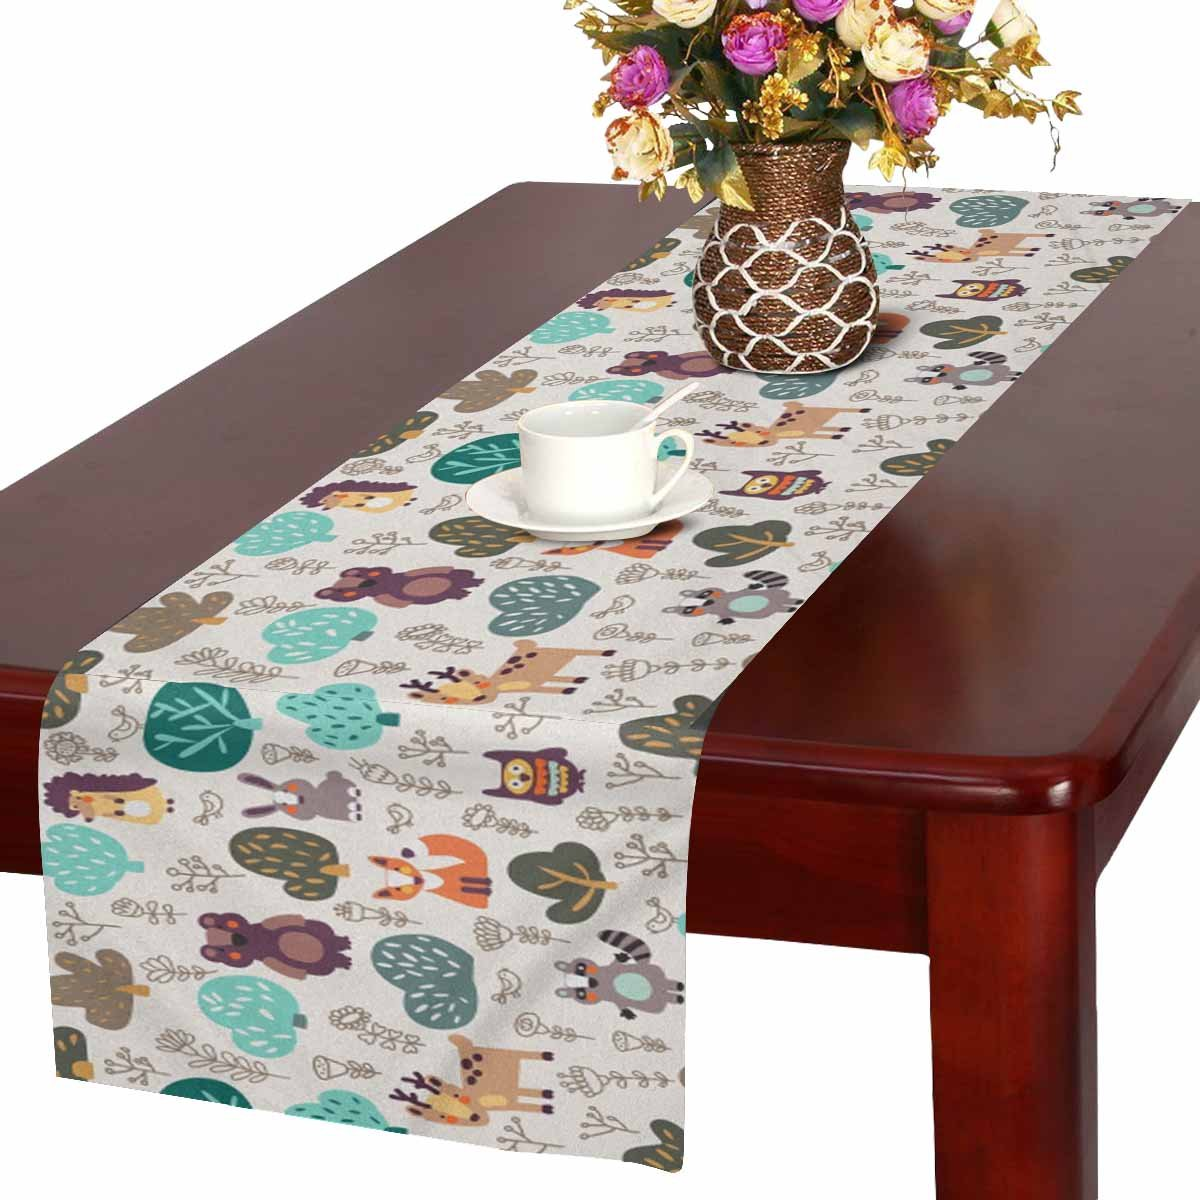 InterestPrint Funny Wild Animals Hedgehog Deer Fox Rabbit and Owl Table Runner Cotton Linen Cloth Placemat Home Decor for Home Kitchen Dining Wedding Party 16 x 72 Inches